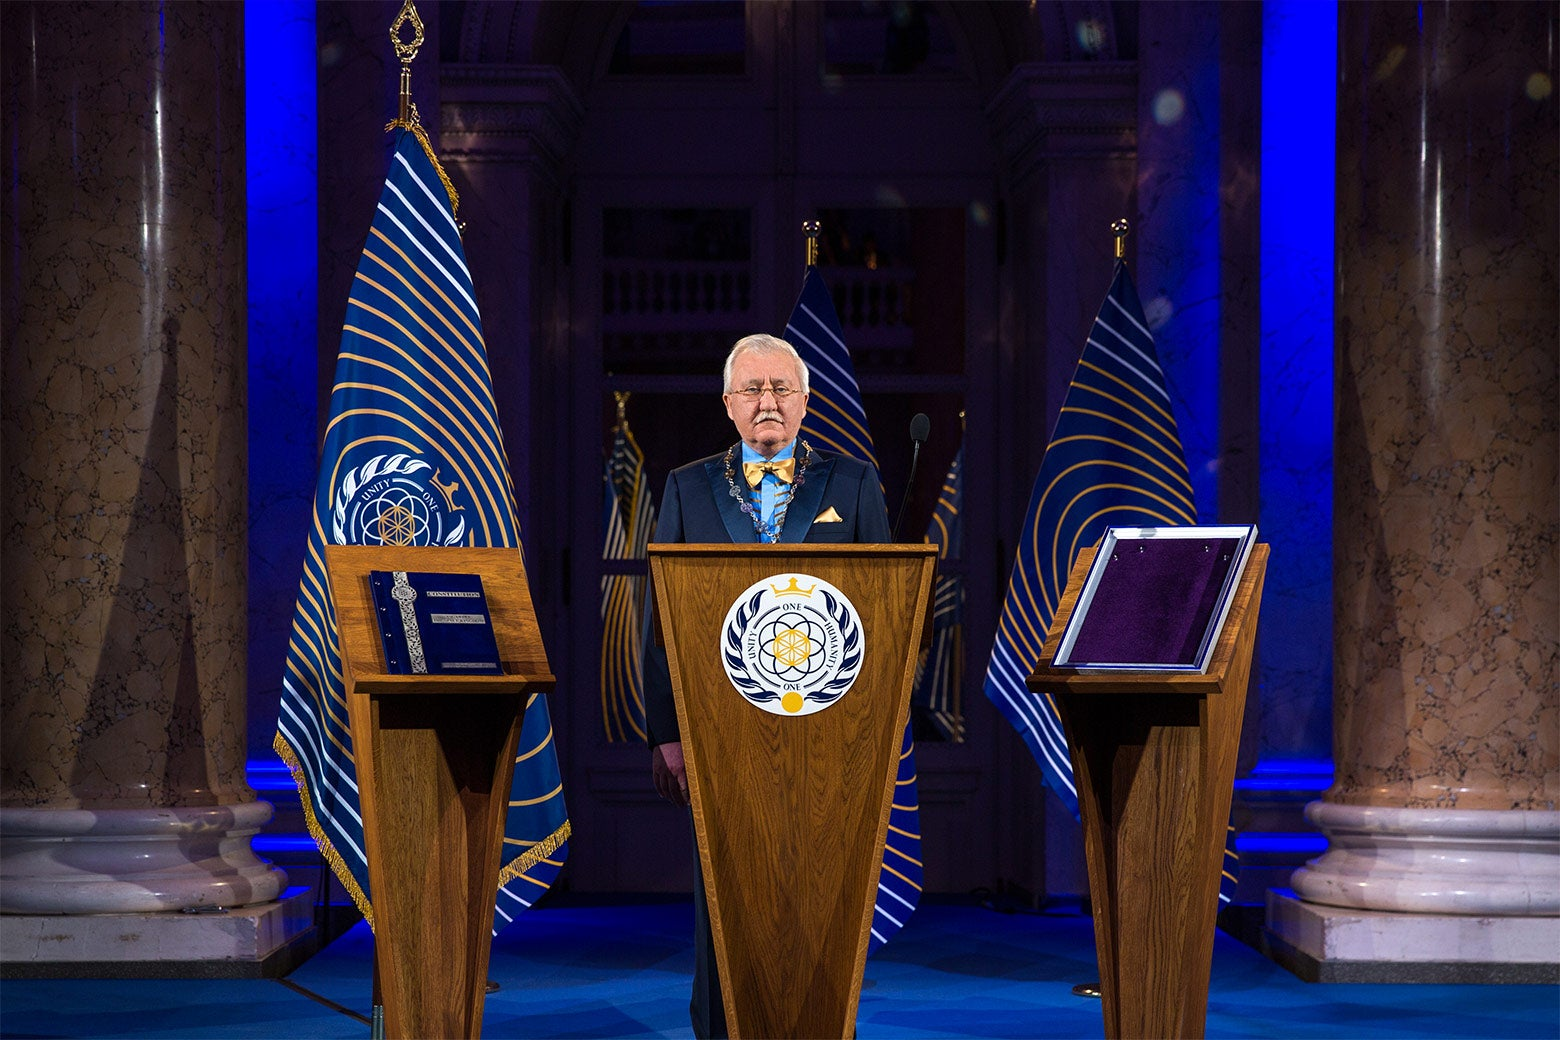 Asgardia President Igor Ashurbeyli stands behind a podium flanked by the flag of Asgardia.